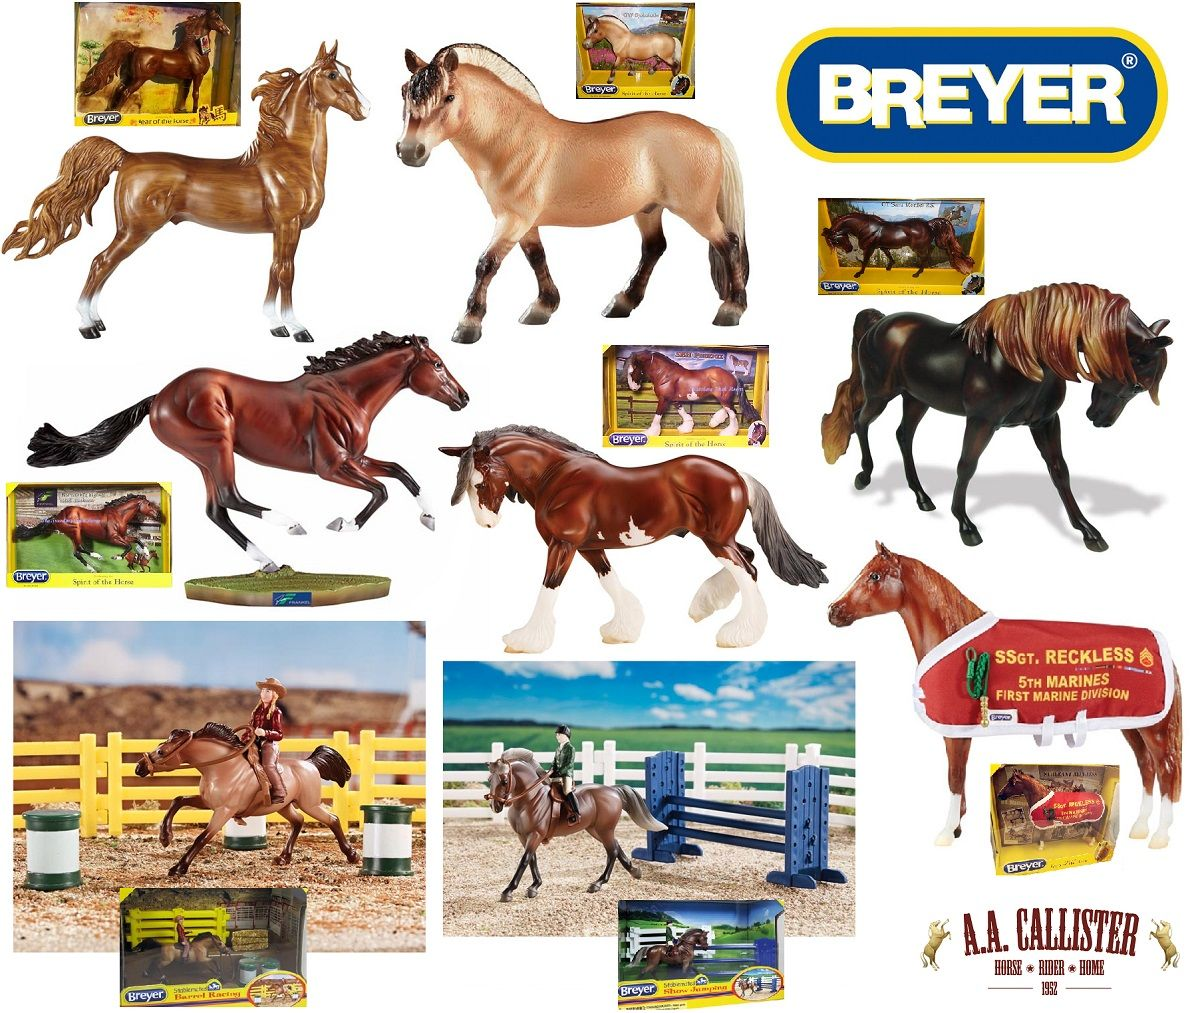 4 3 14 Do You Collect Breyer S How Many Do You Have